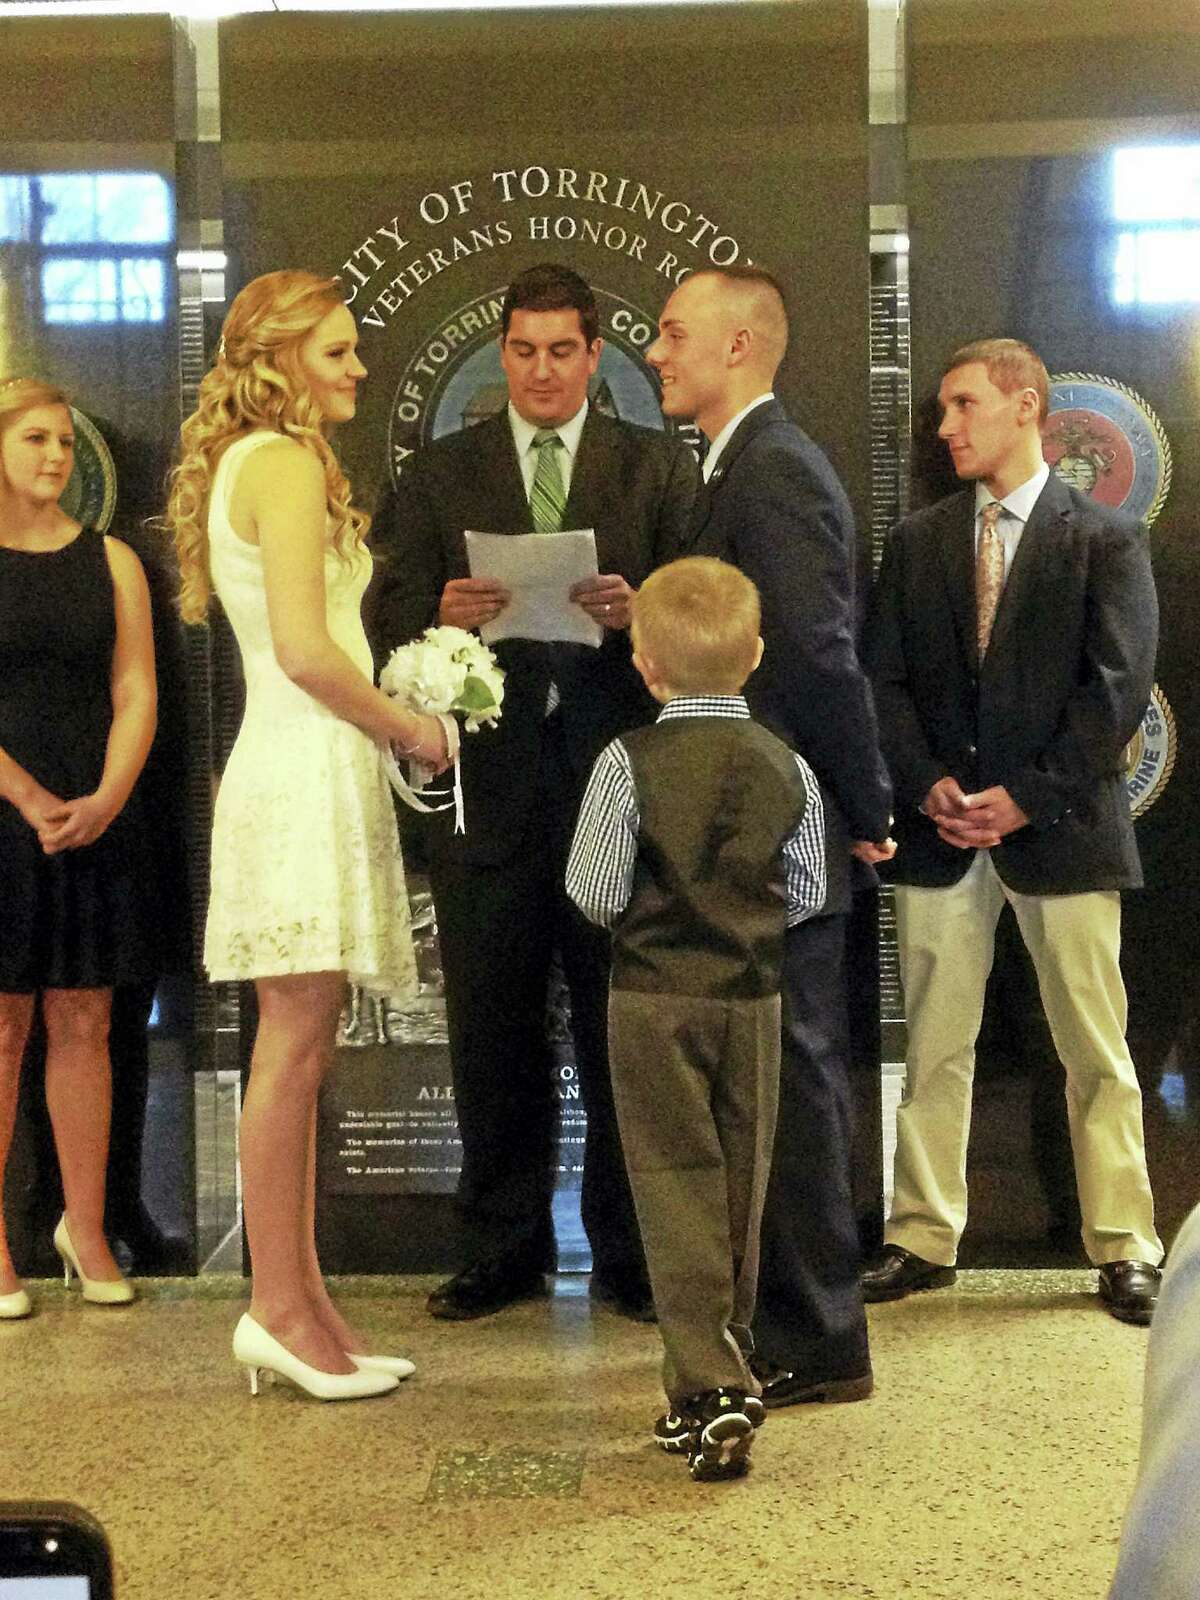 Emily M. Olson - The Register Citizen Hailey Rodger and U.S. Air Force Airman Nick Simonin were married Tuesday at City Hall, in a ceremony conducted by former mayor Ryan Bingham.